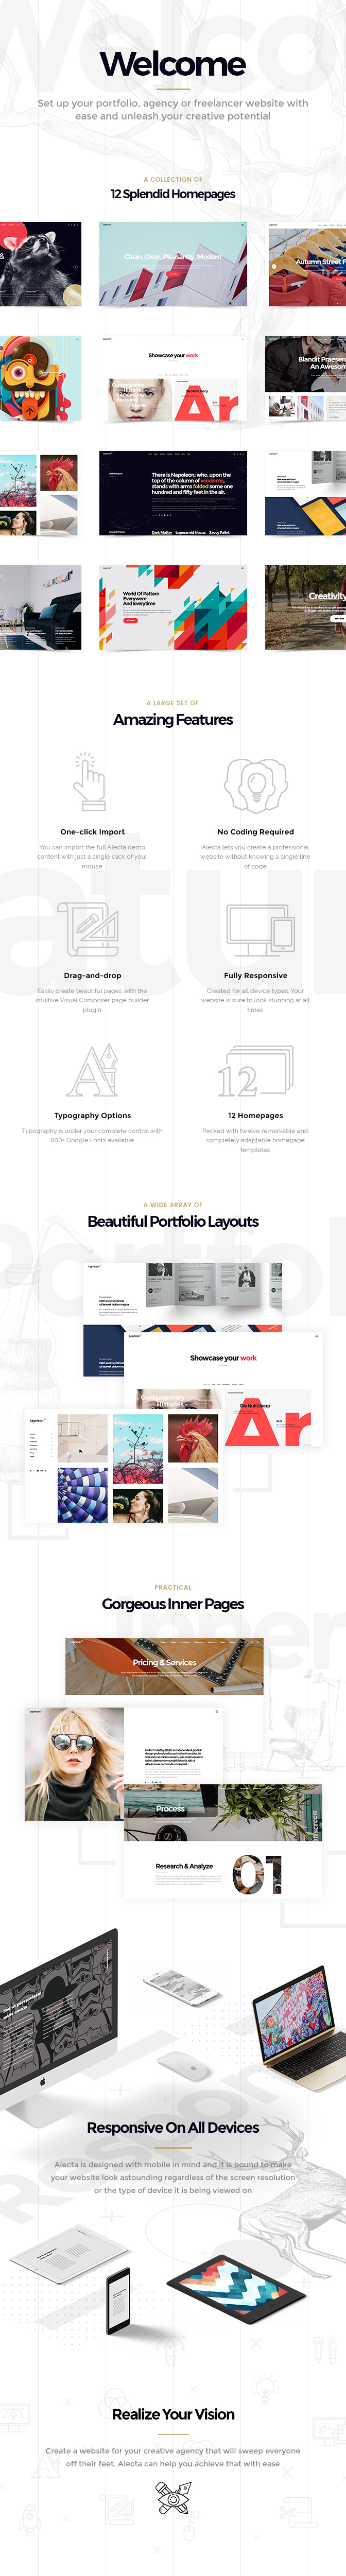 WordPress theme Alecta - A Smart Theme for Creative Agencies and Freelancers (Portfolio)